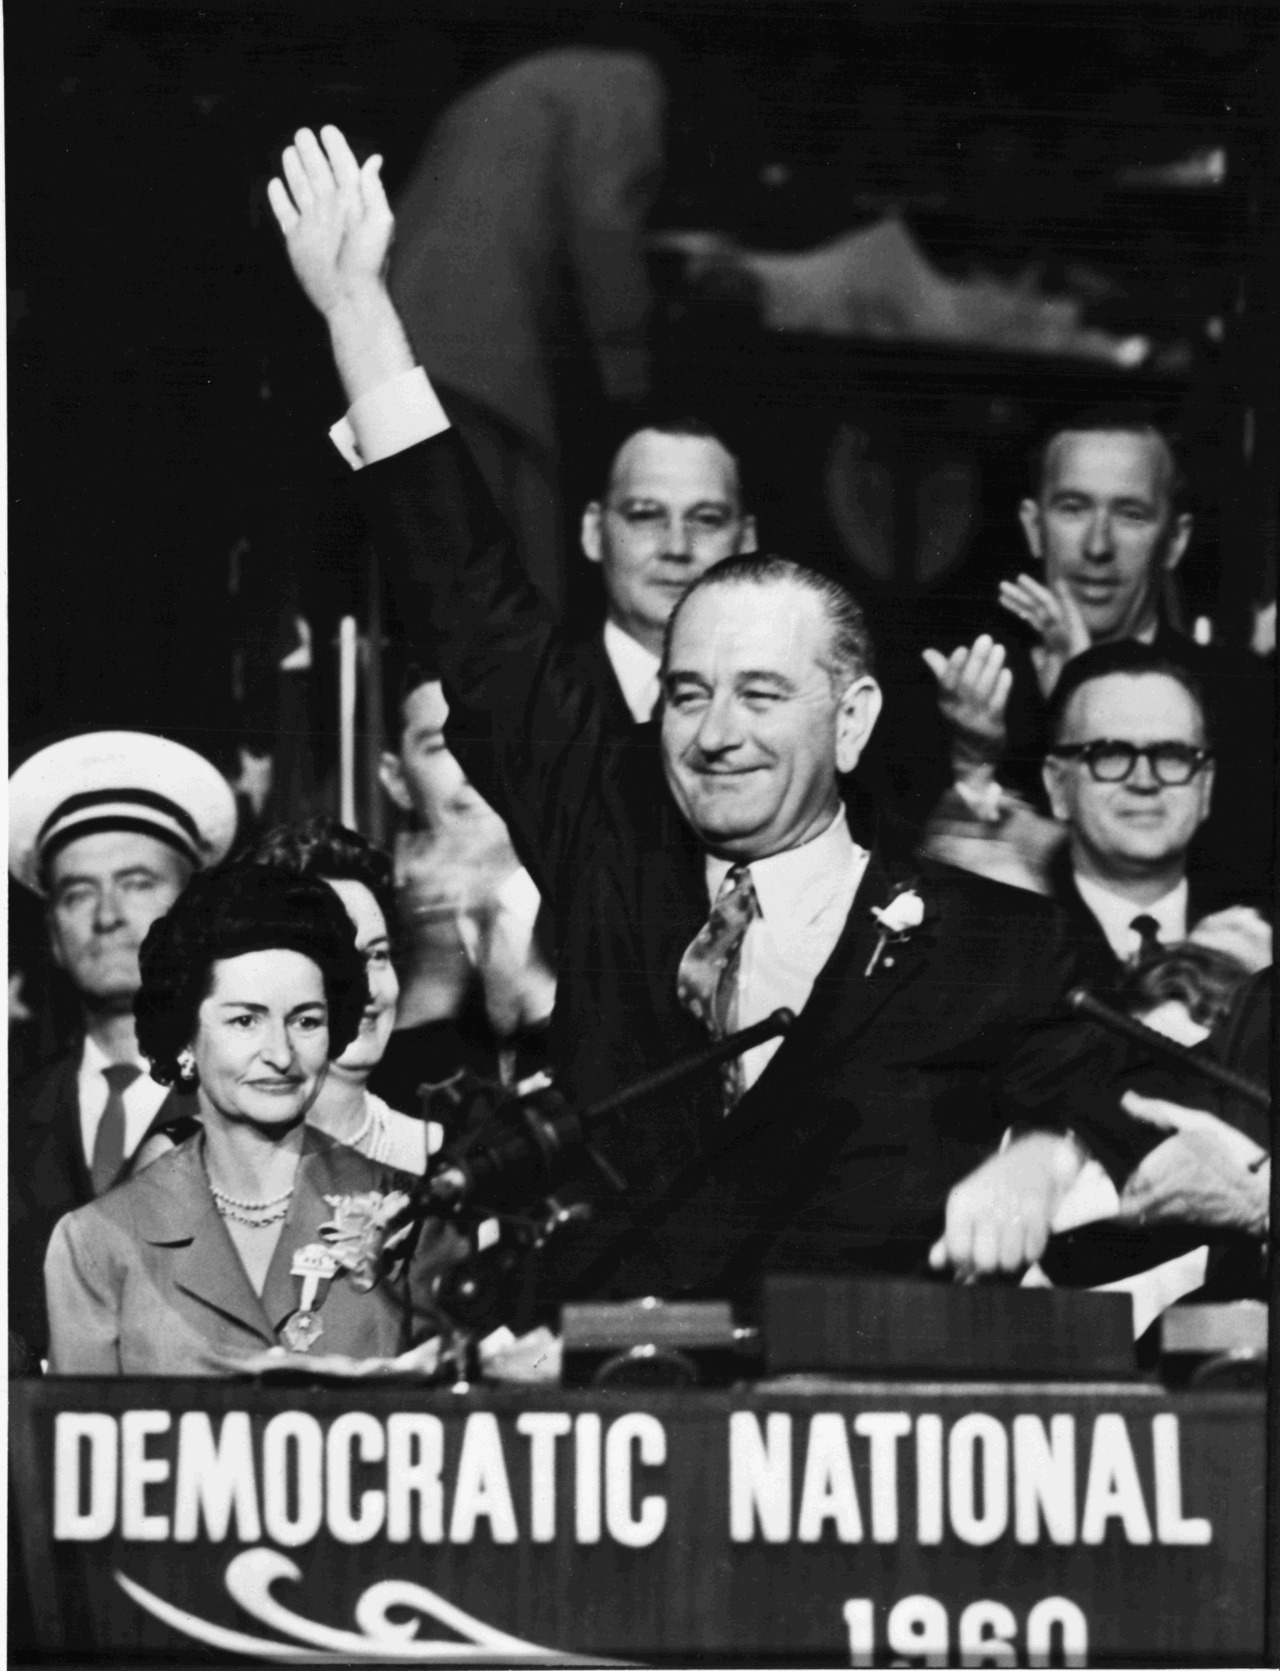 lbjlibrary :     July 16, 1960. At 6:00 pm LBJ makes his acceptance speech before the convention. He will be the Democratic candidate for Vice President.   LBJ Library photo 60-7-171. The Johnson Library has no information about the original source of this item.